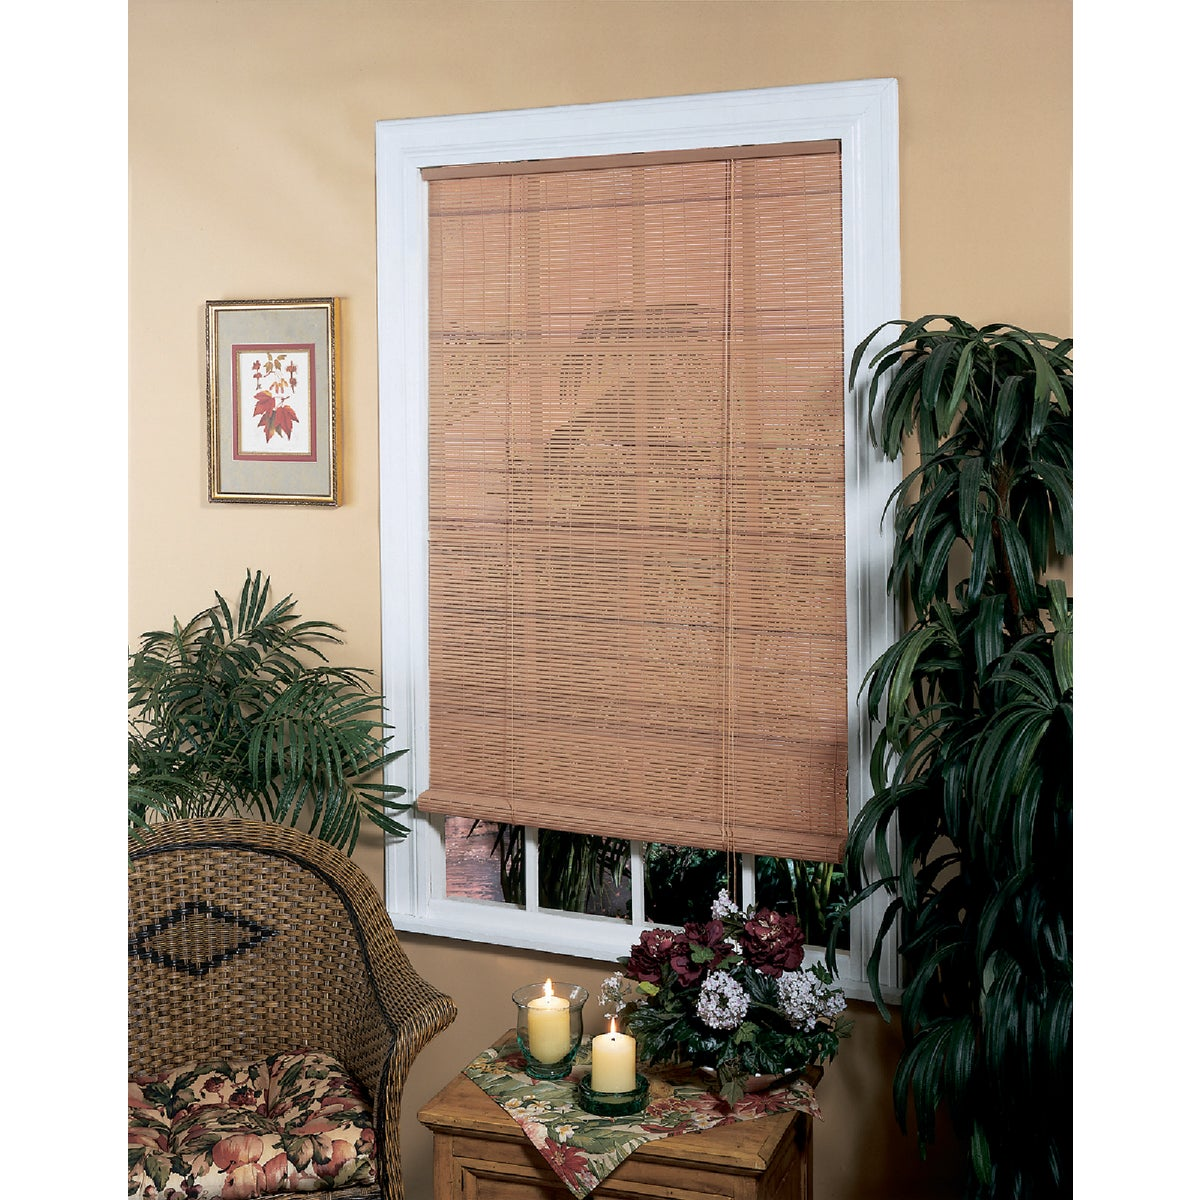 60X72 WDGN ROLL-UP BLIND